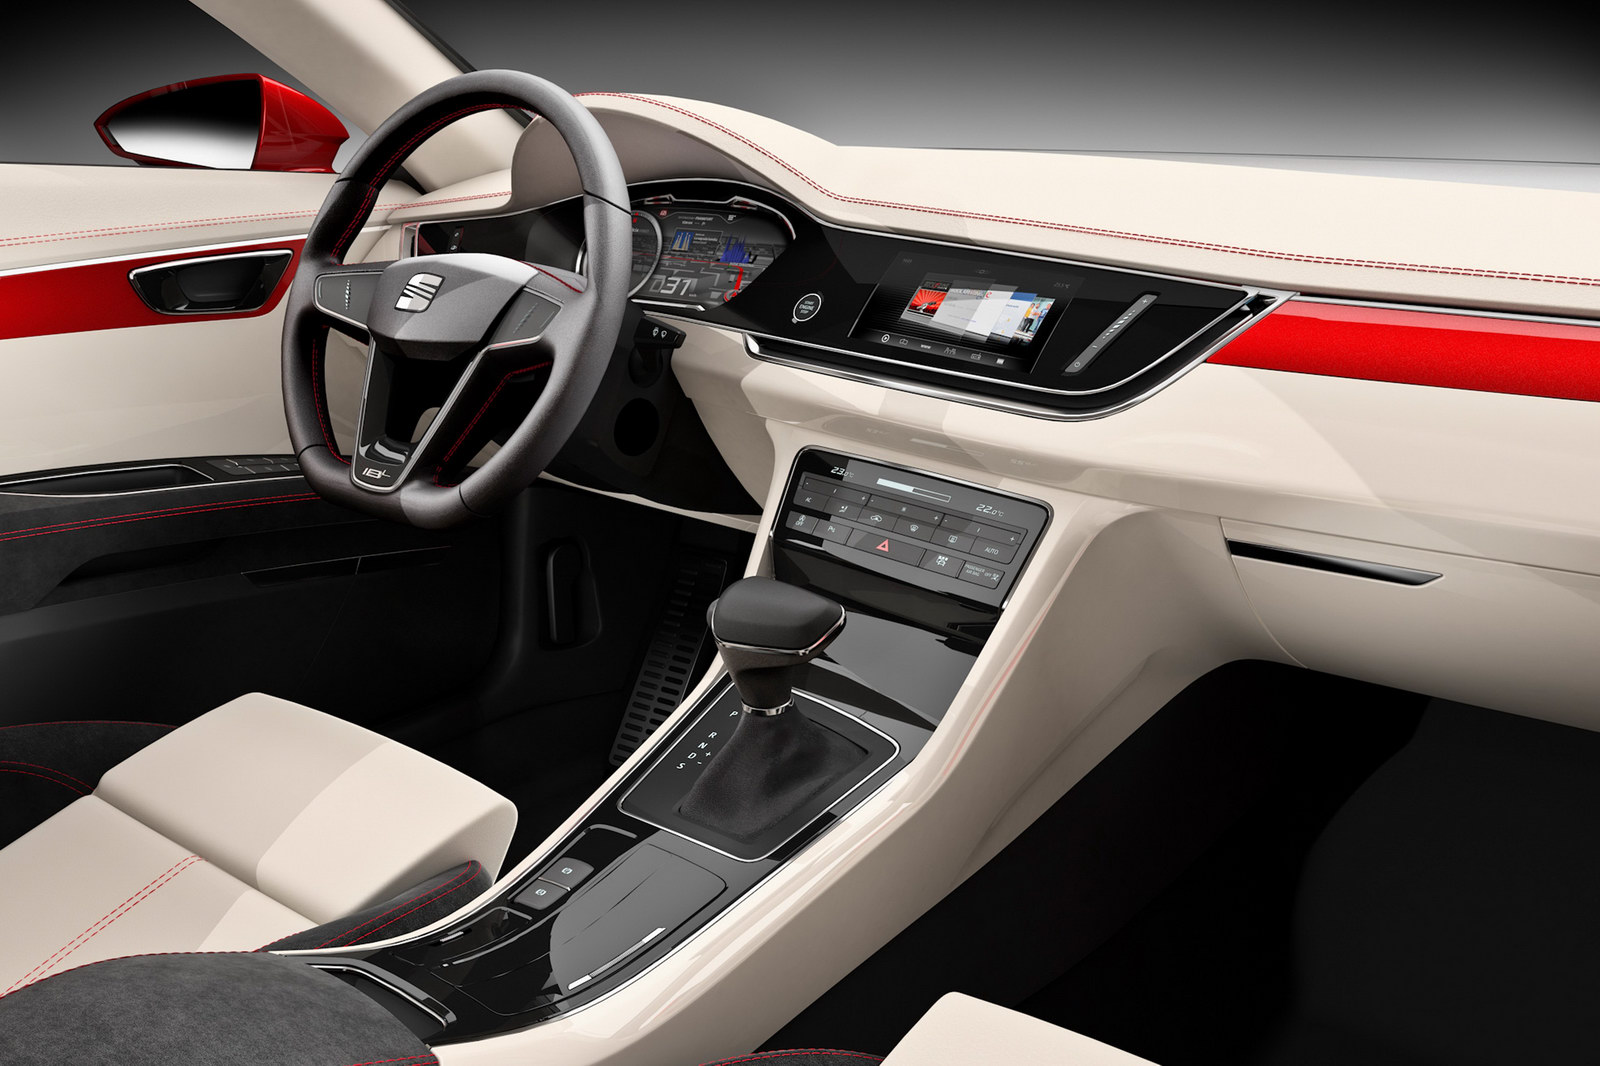 2011 SEAT IBL Sports Concept CSP 5 Seats Sharp Looking IBL Concept Sedan for IAA 2011